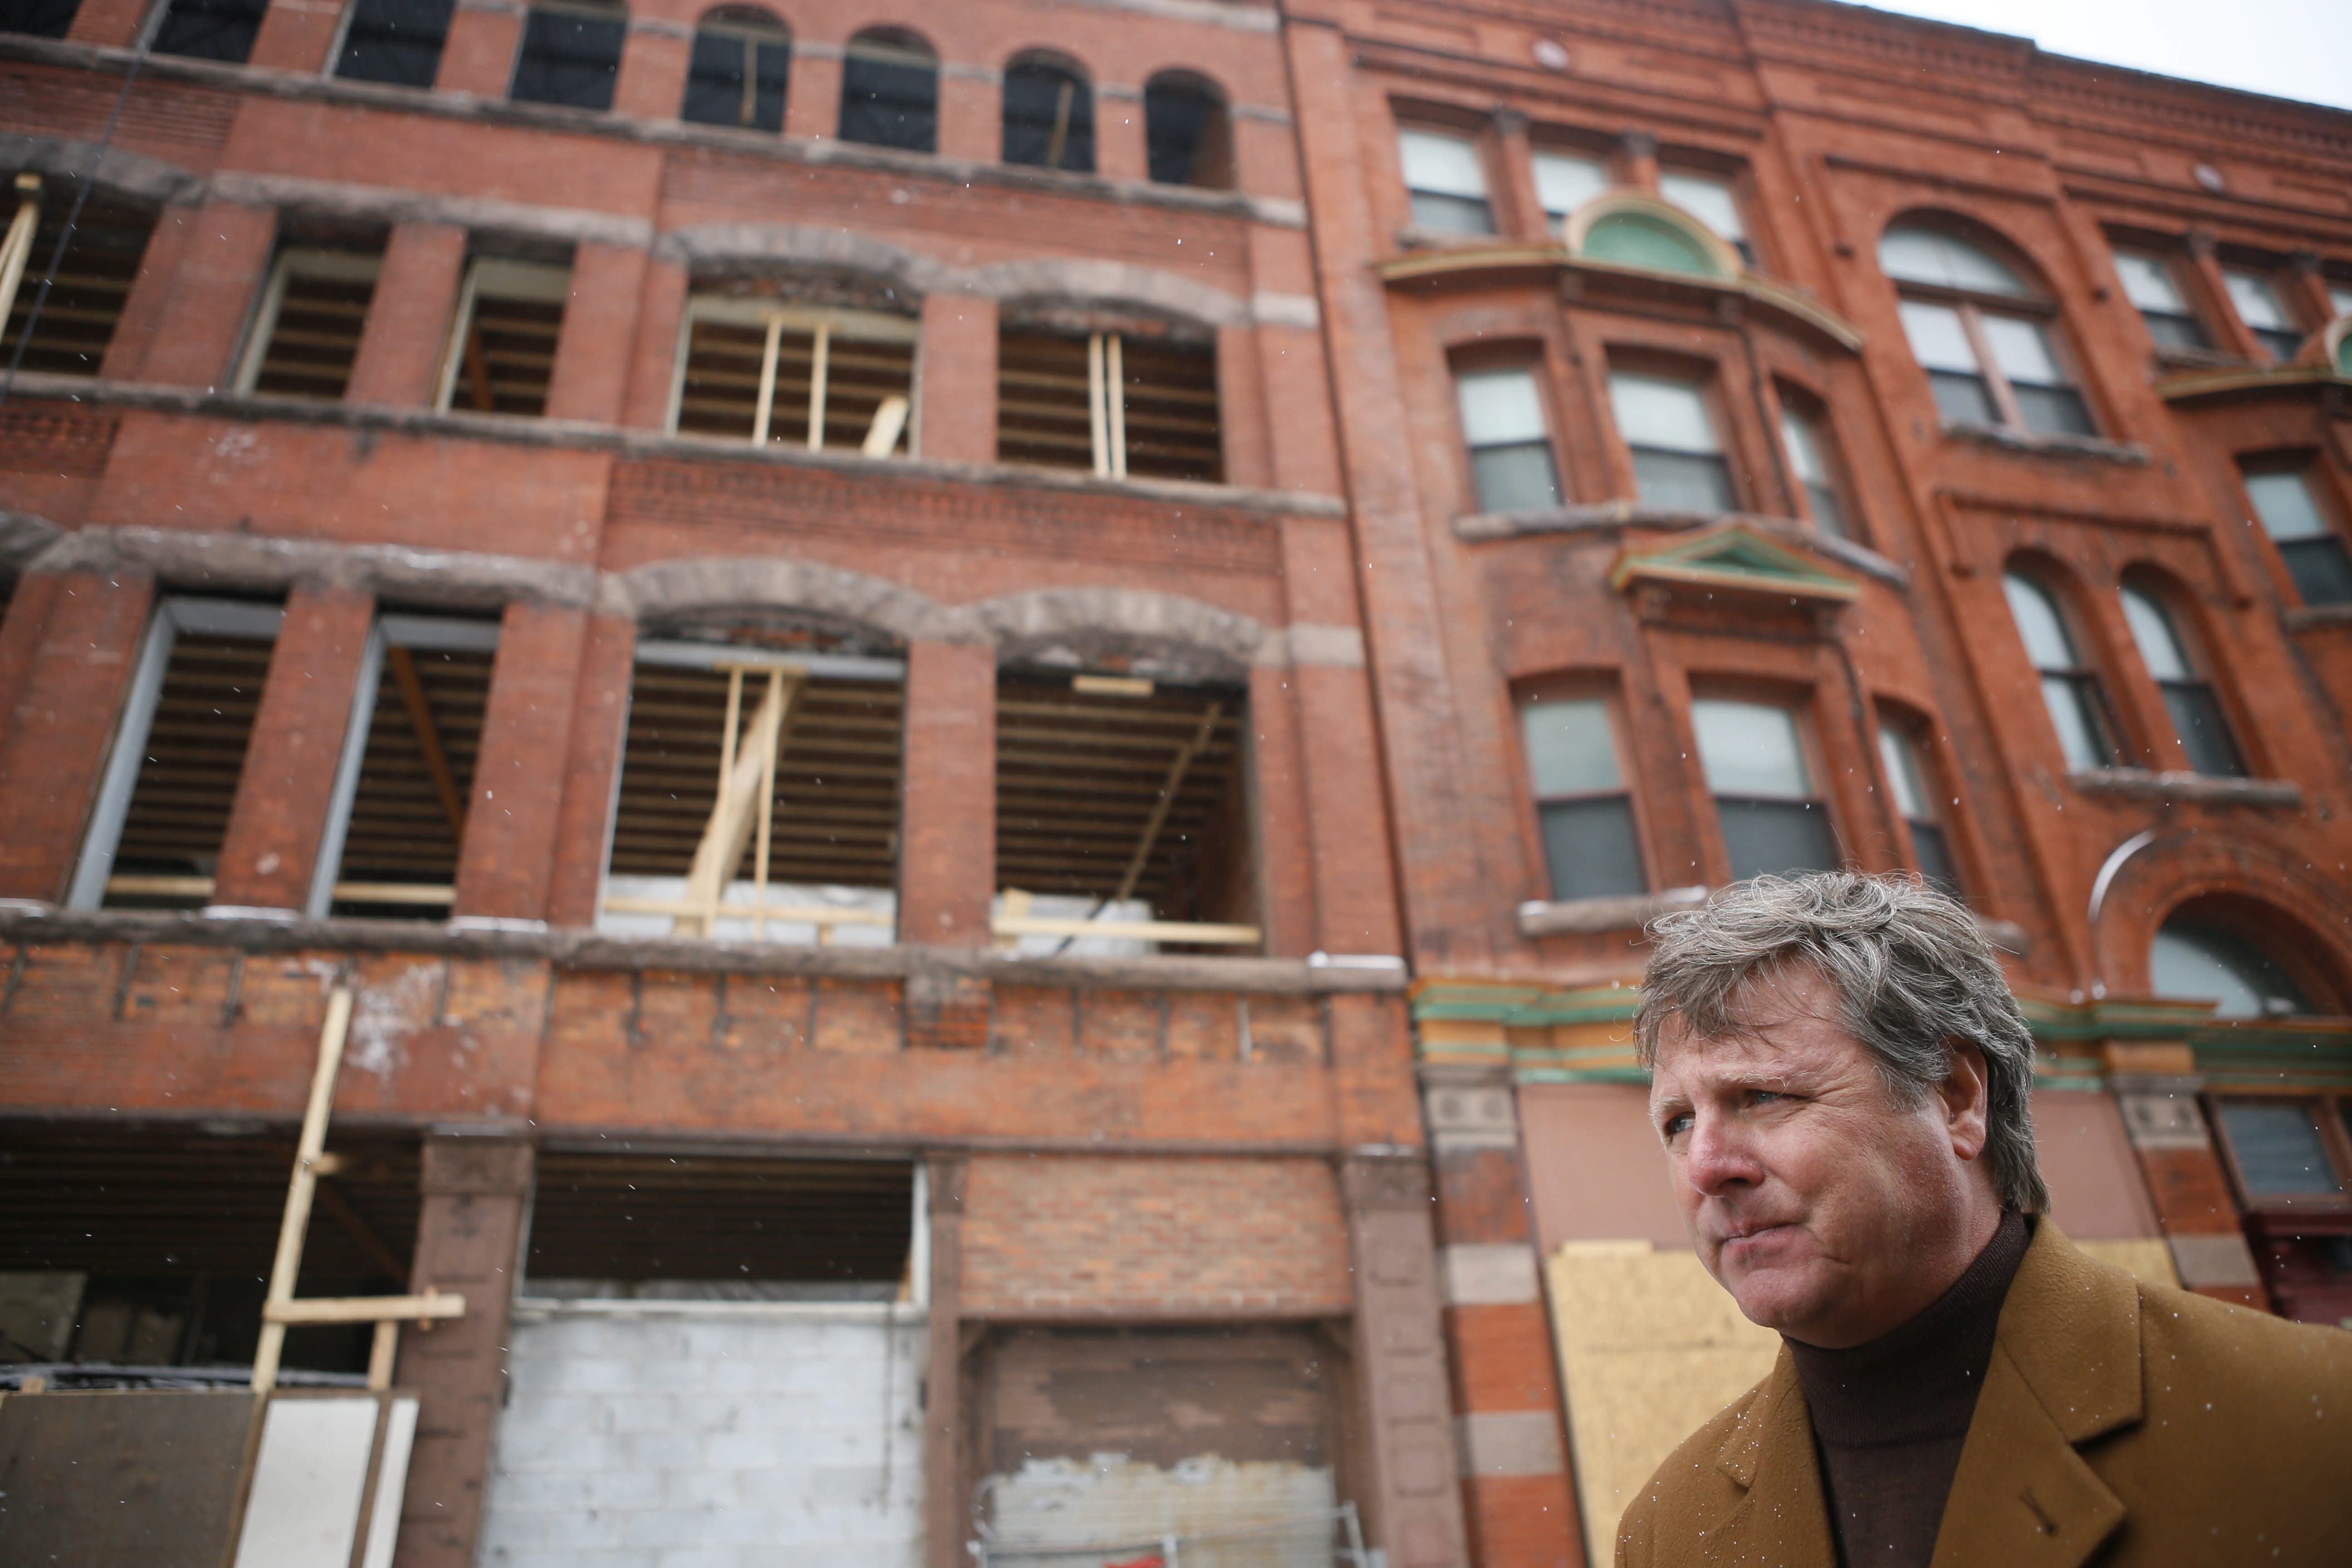 James Swiezy, president of Greenleaf & Co., has incentives to proceed on plan to turn 122-year-old Bosche Building at 916-918 Main St. into 23 market-rate apartments across from Medical Campus.